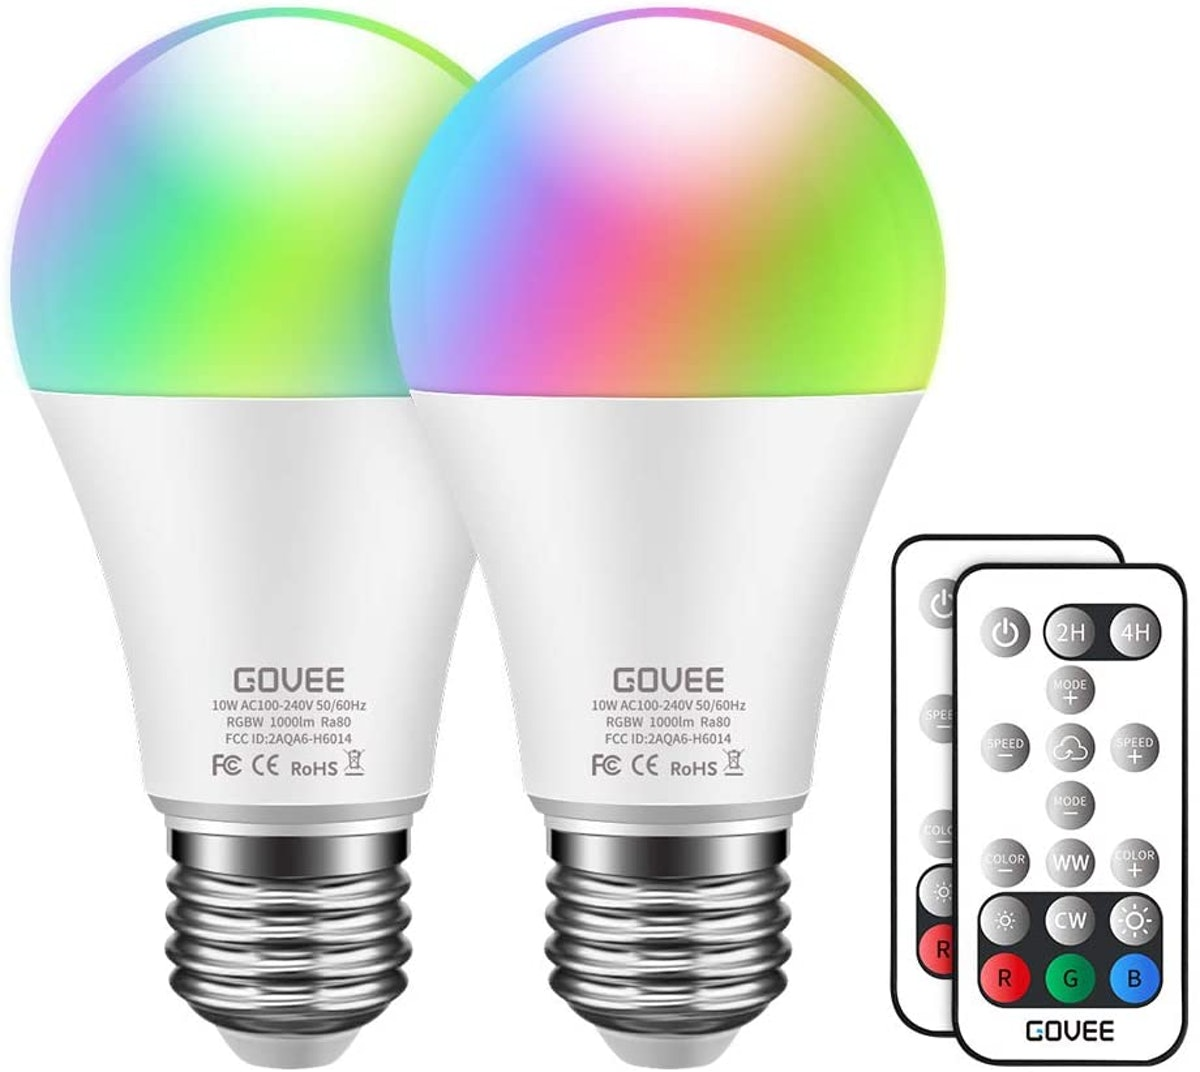 Govee Color Changing Light Bulbs (2-pack)